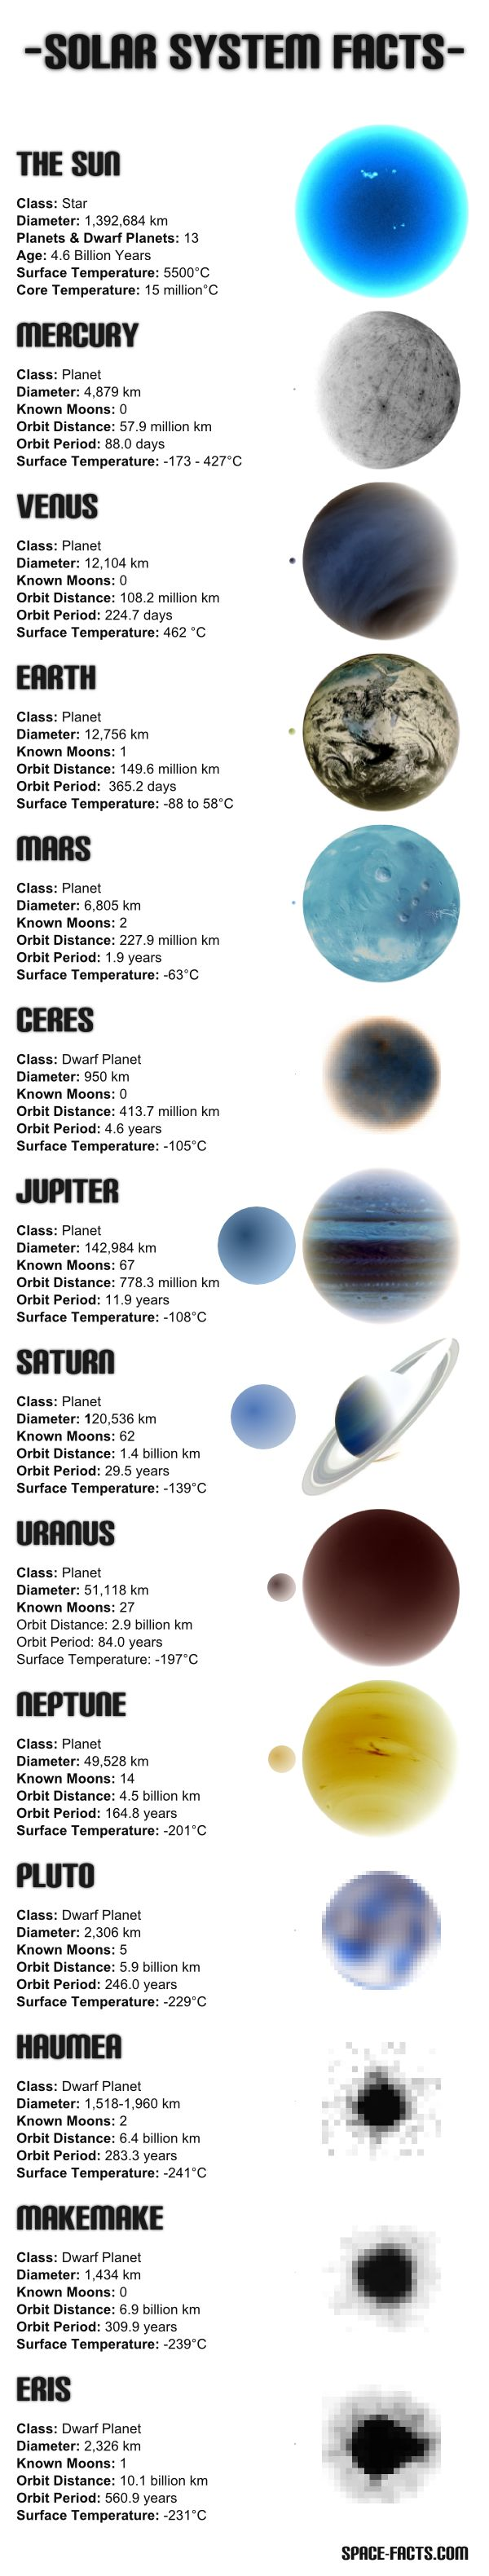 NASA. (2012). SOLAR SYSTEM PLANETS & DWARF PLANETS INFORMATION CHART. Available: http://space-facts.com/solar-system-information/. Last accessed 6th November.